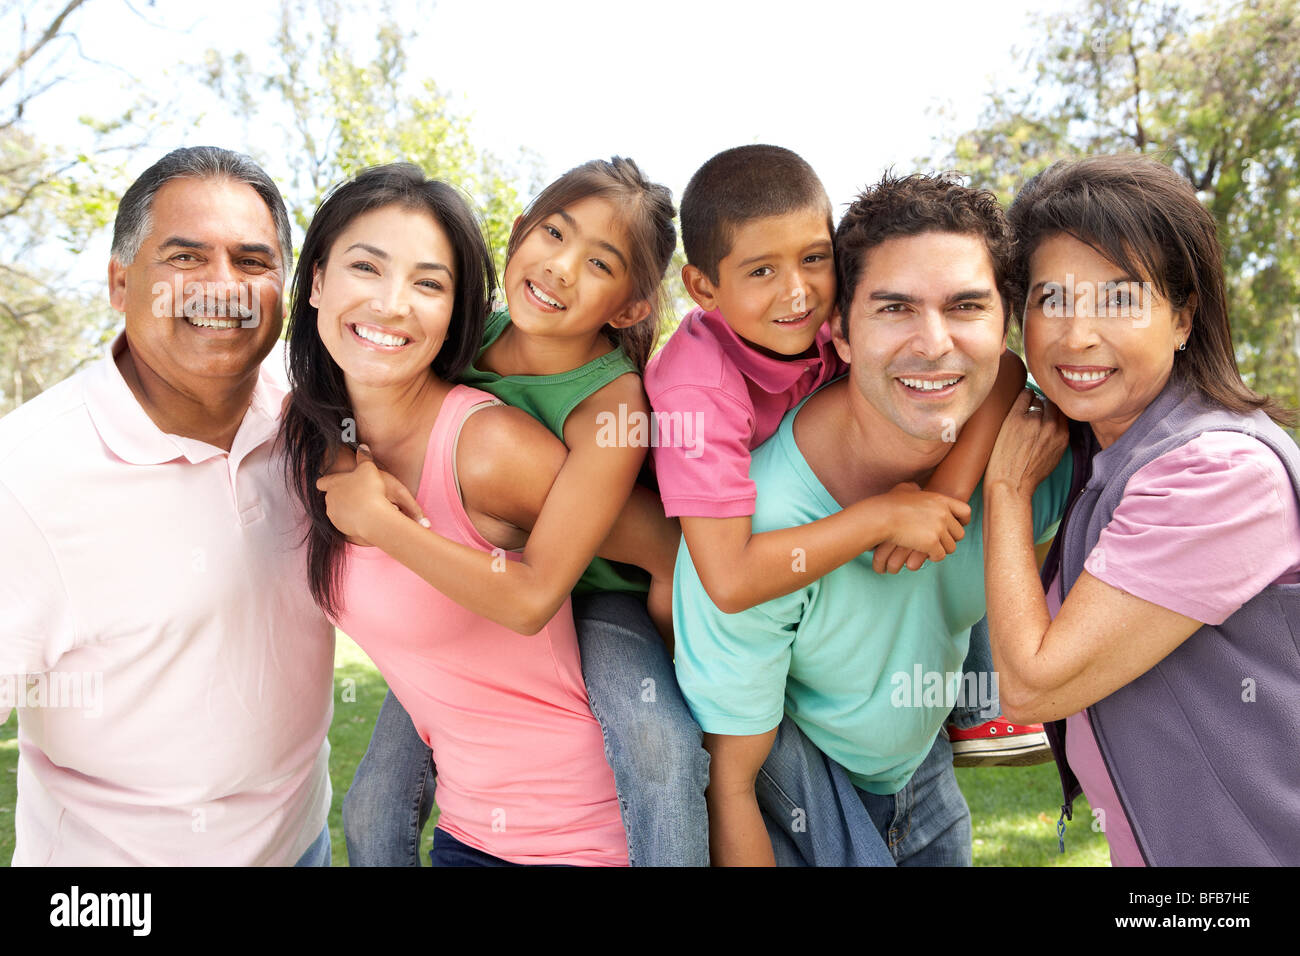 Extended Family Group In Park - Stock Image